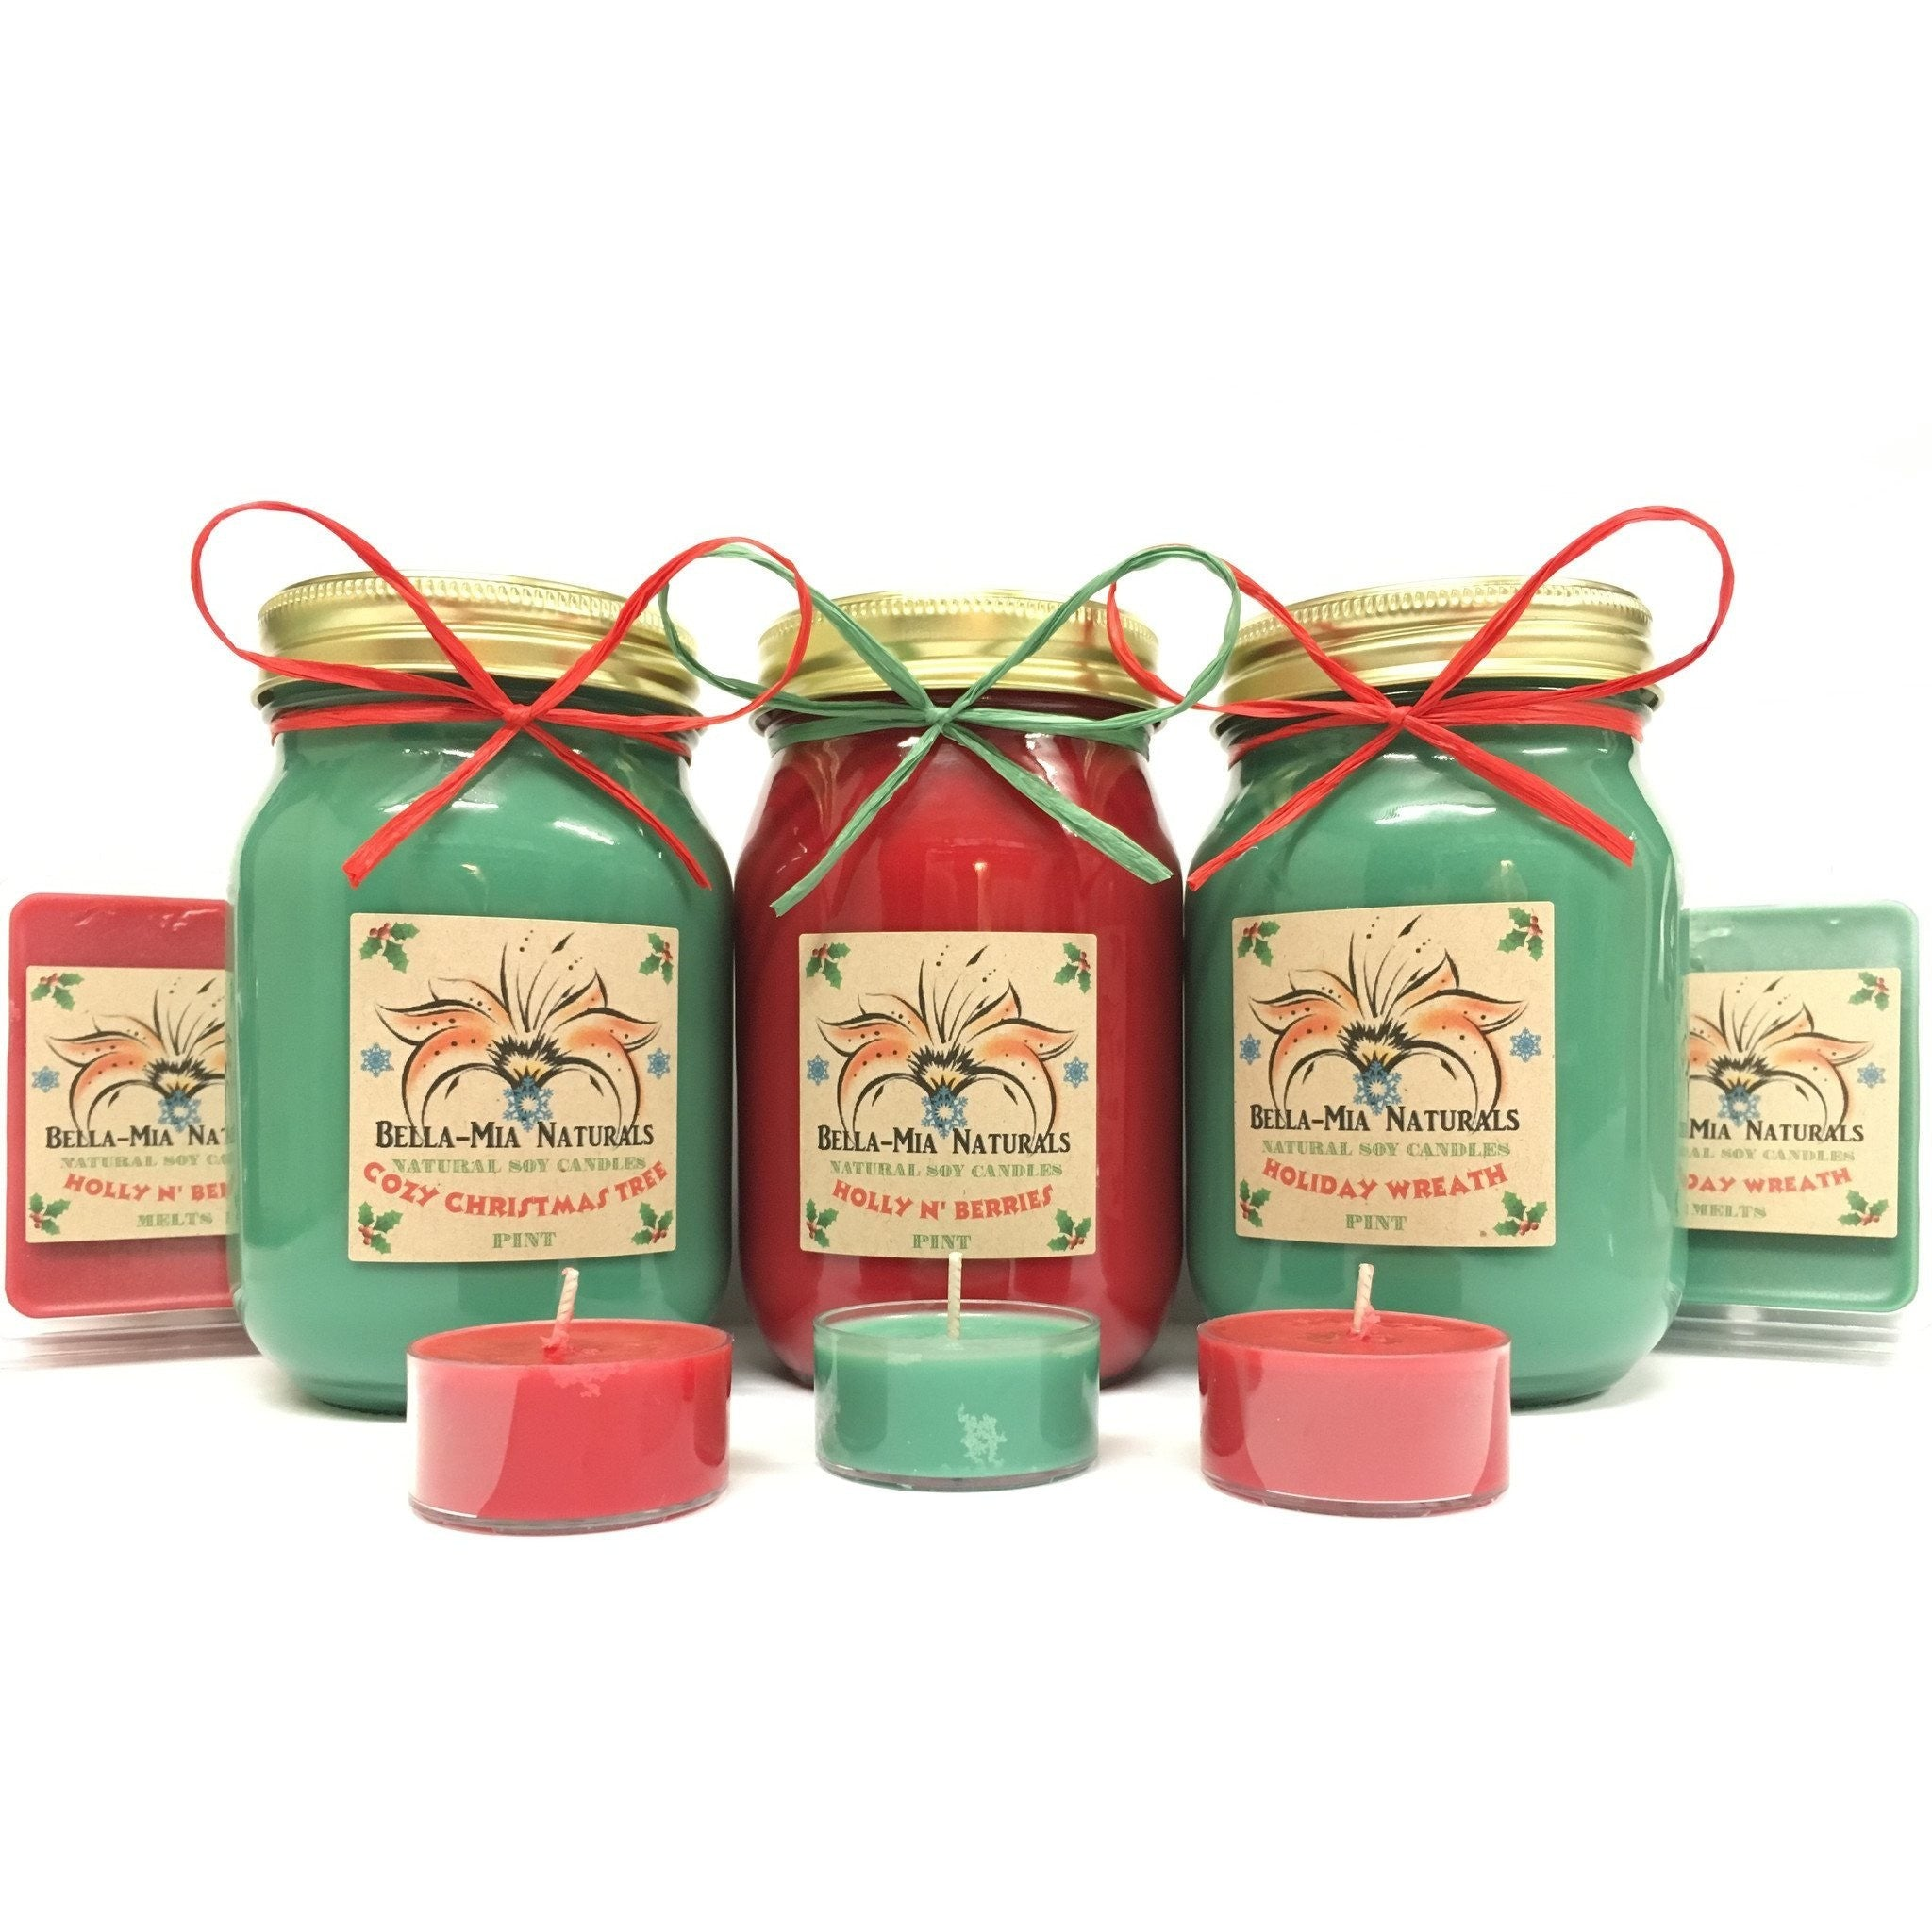 Cozy Christmas Tree Natural Hand Poured Soy Candles -  - Bella-Mia Naturals All Natural Soy Candles & Lip Balms - 4